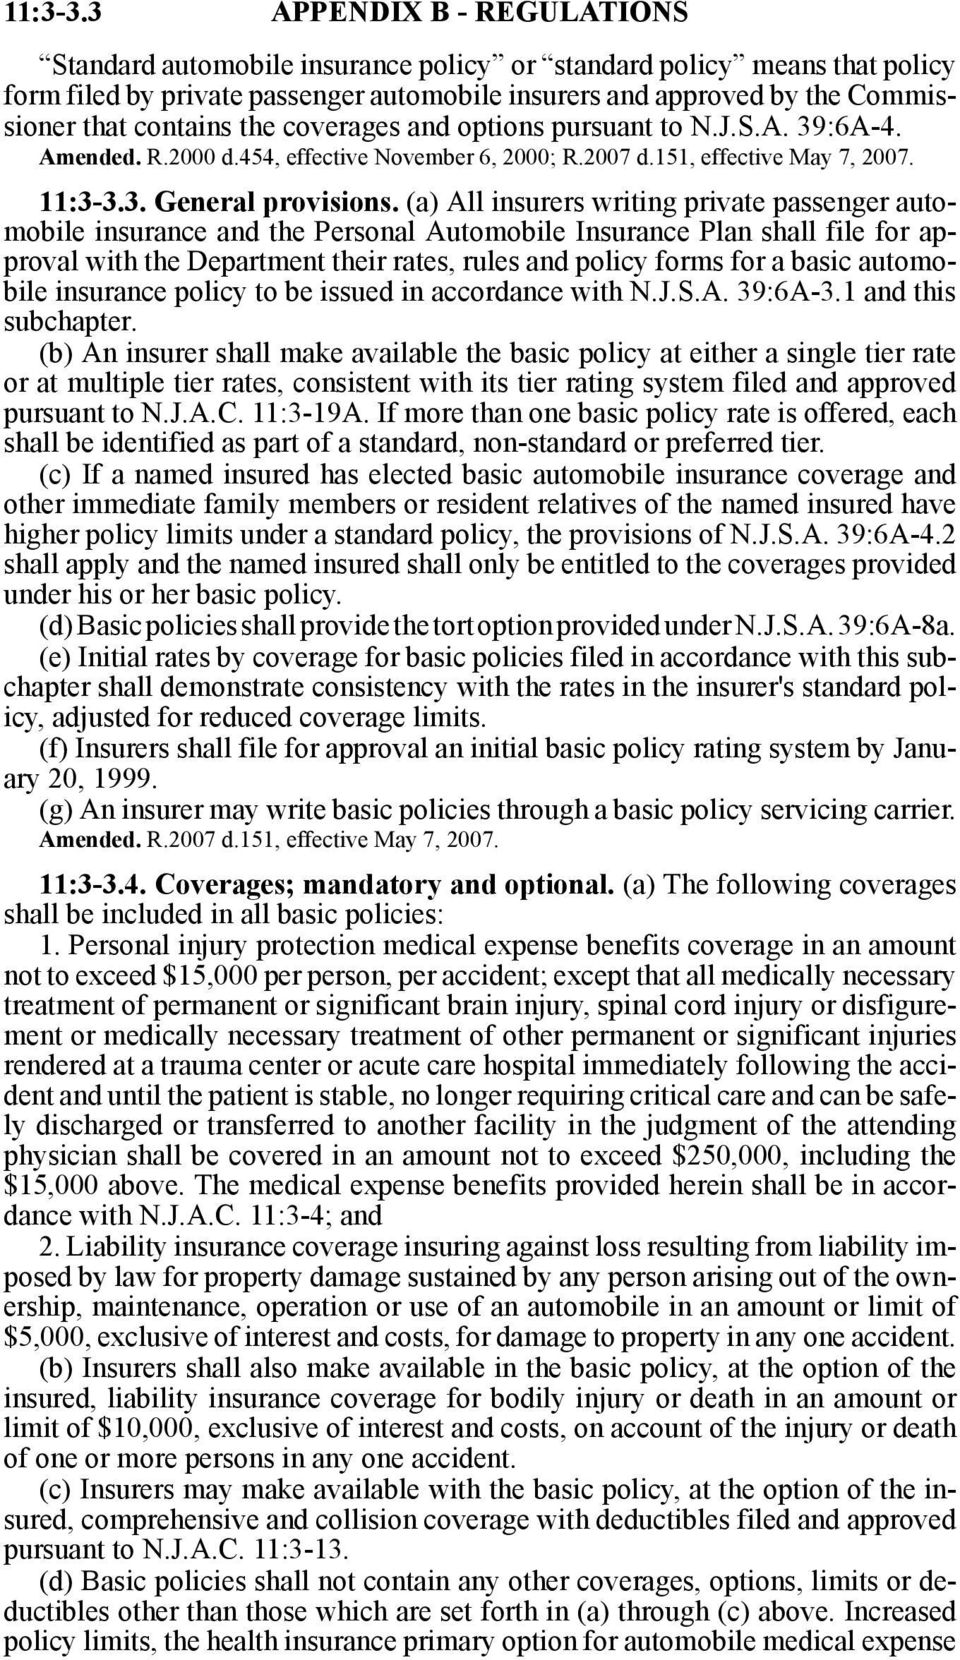 the coverages and options pursuant to N.J.S.A. 39:6A-4. Amended. R.2000 d.454, effective November 6, 2000; R.2007 d.151, effective May 7, 2007. 3. General provisions.